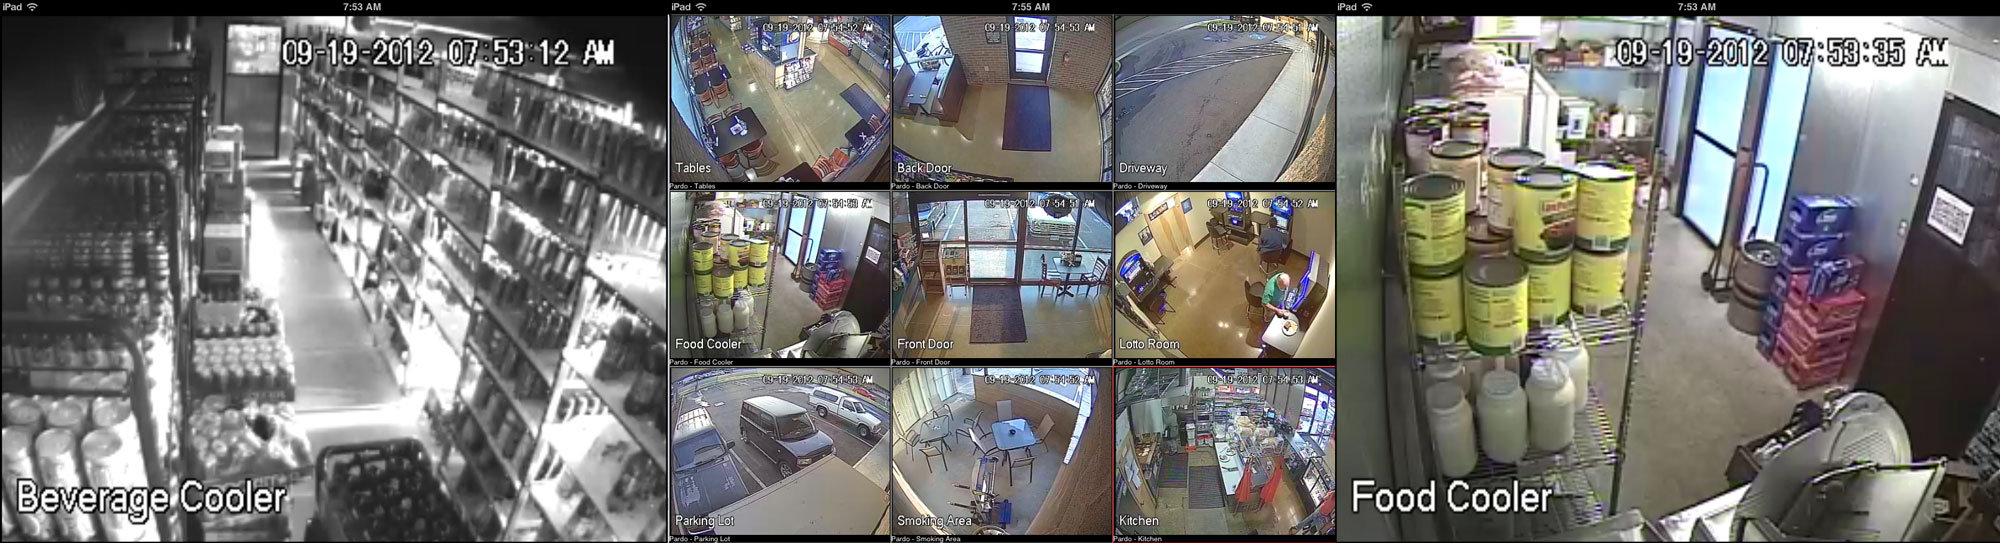 Security & Camera Systems